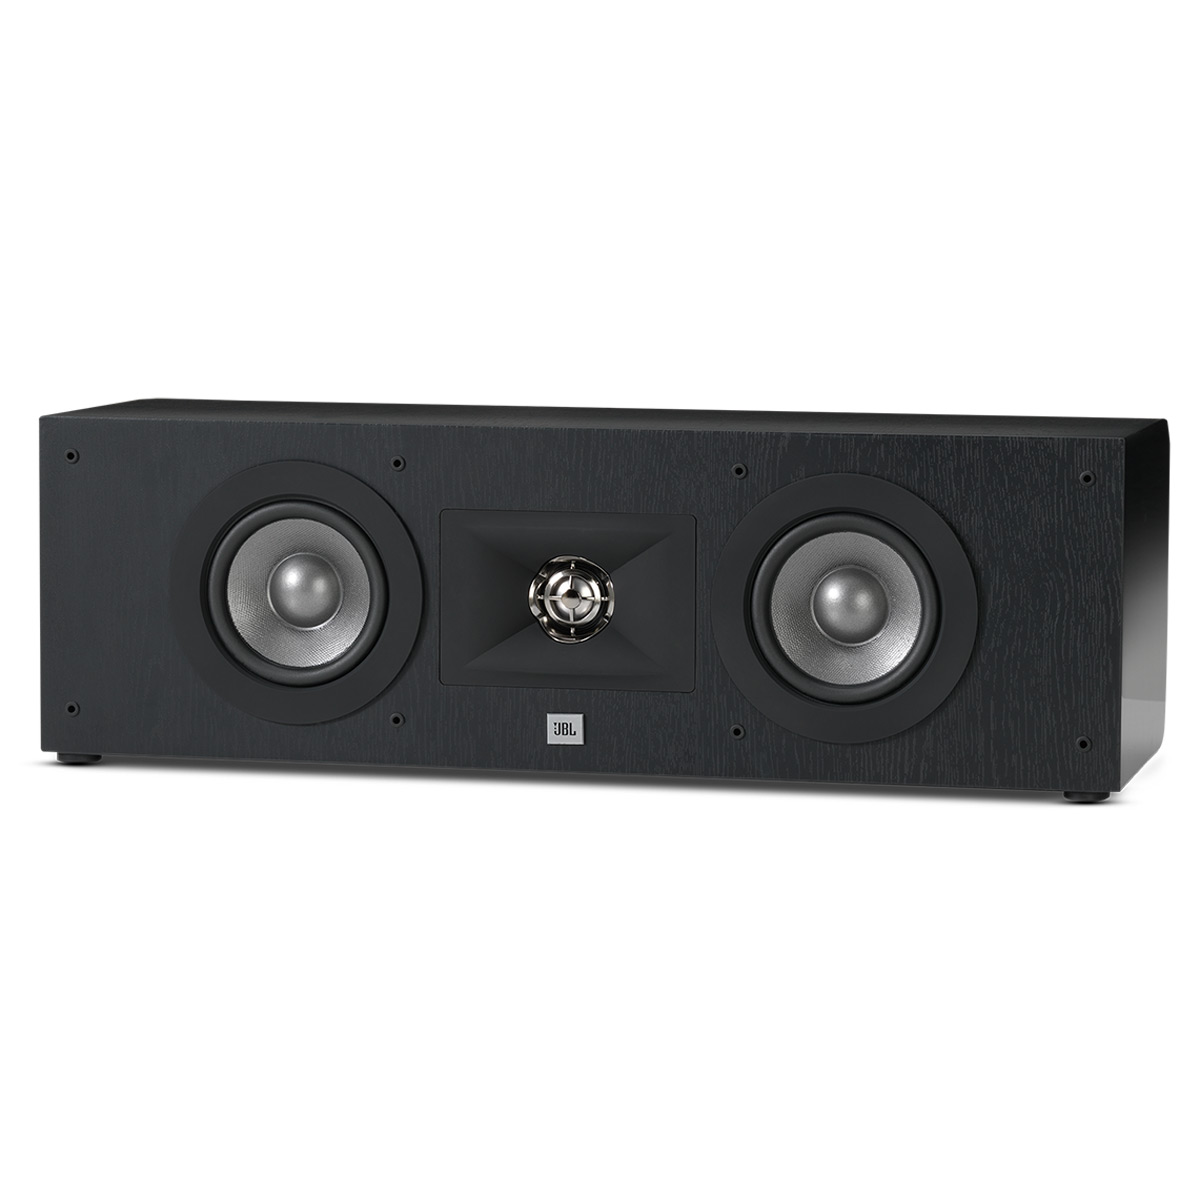 jbl studio 225c noir enceintes hifi jbl sur. Black Bedroom Furniture Sets. Home Design Ideas